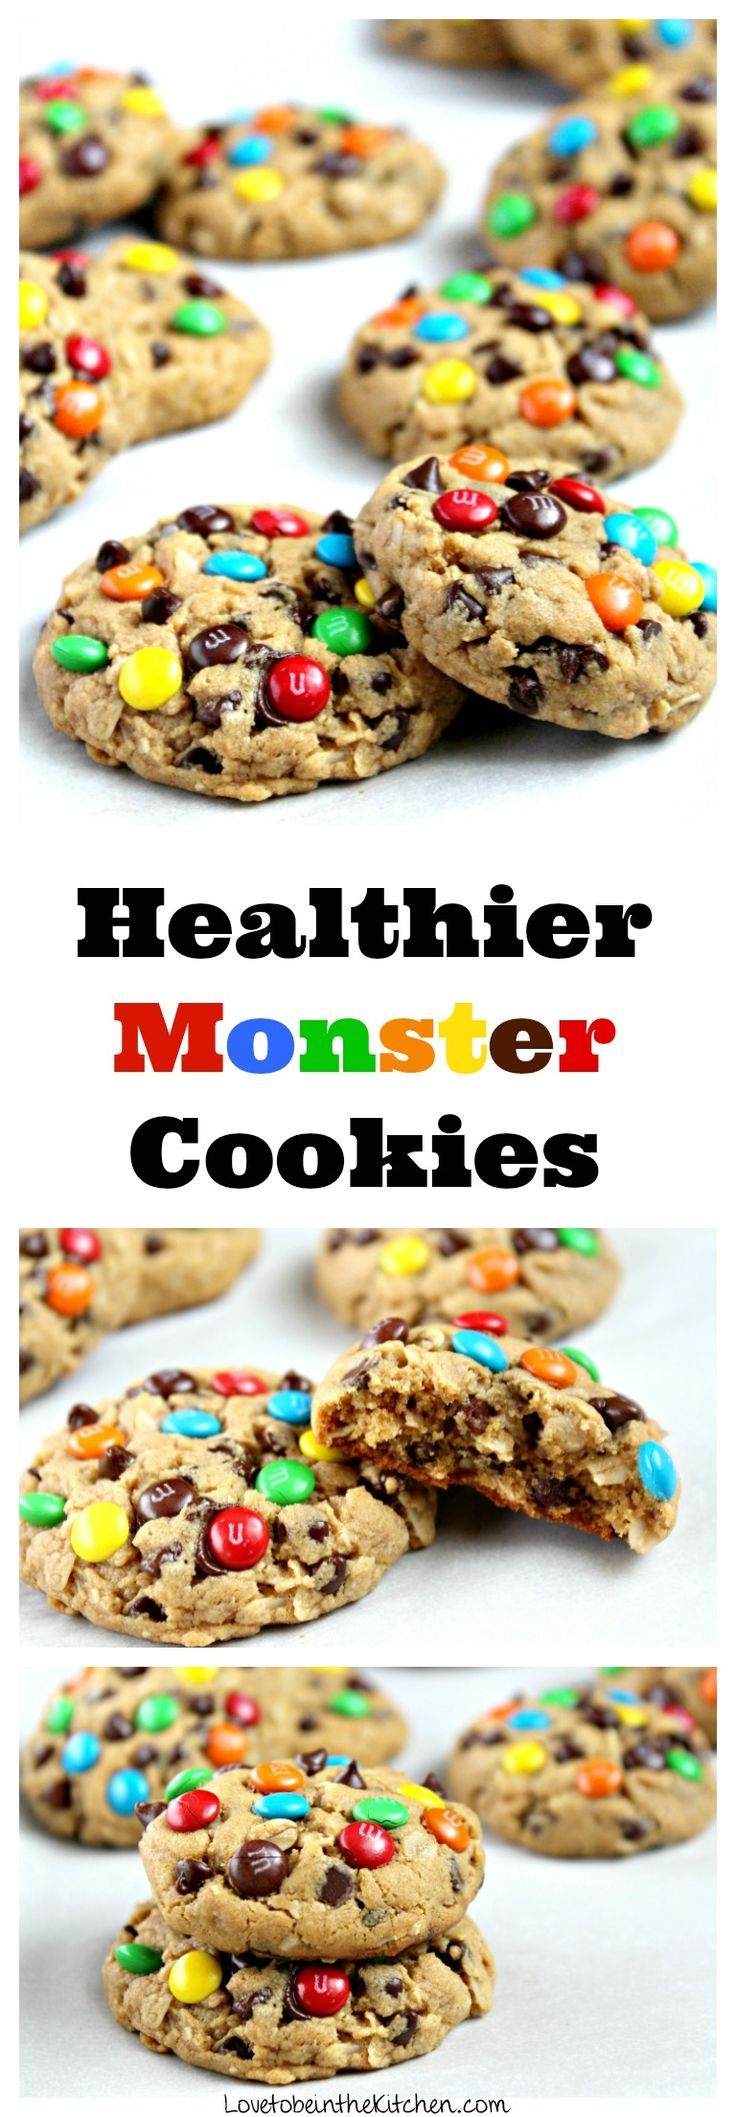 A soft and delicious healthier Monster Cookie made with peanut butter, oats, mini chocolate chips and topped with colorful mini M&M's. There's no butter, oil or flour in these cookies!